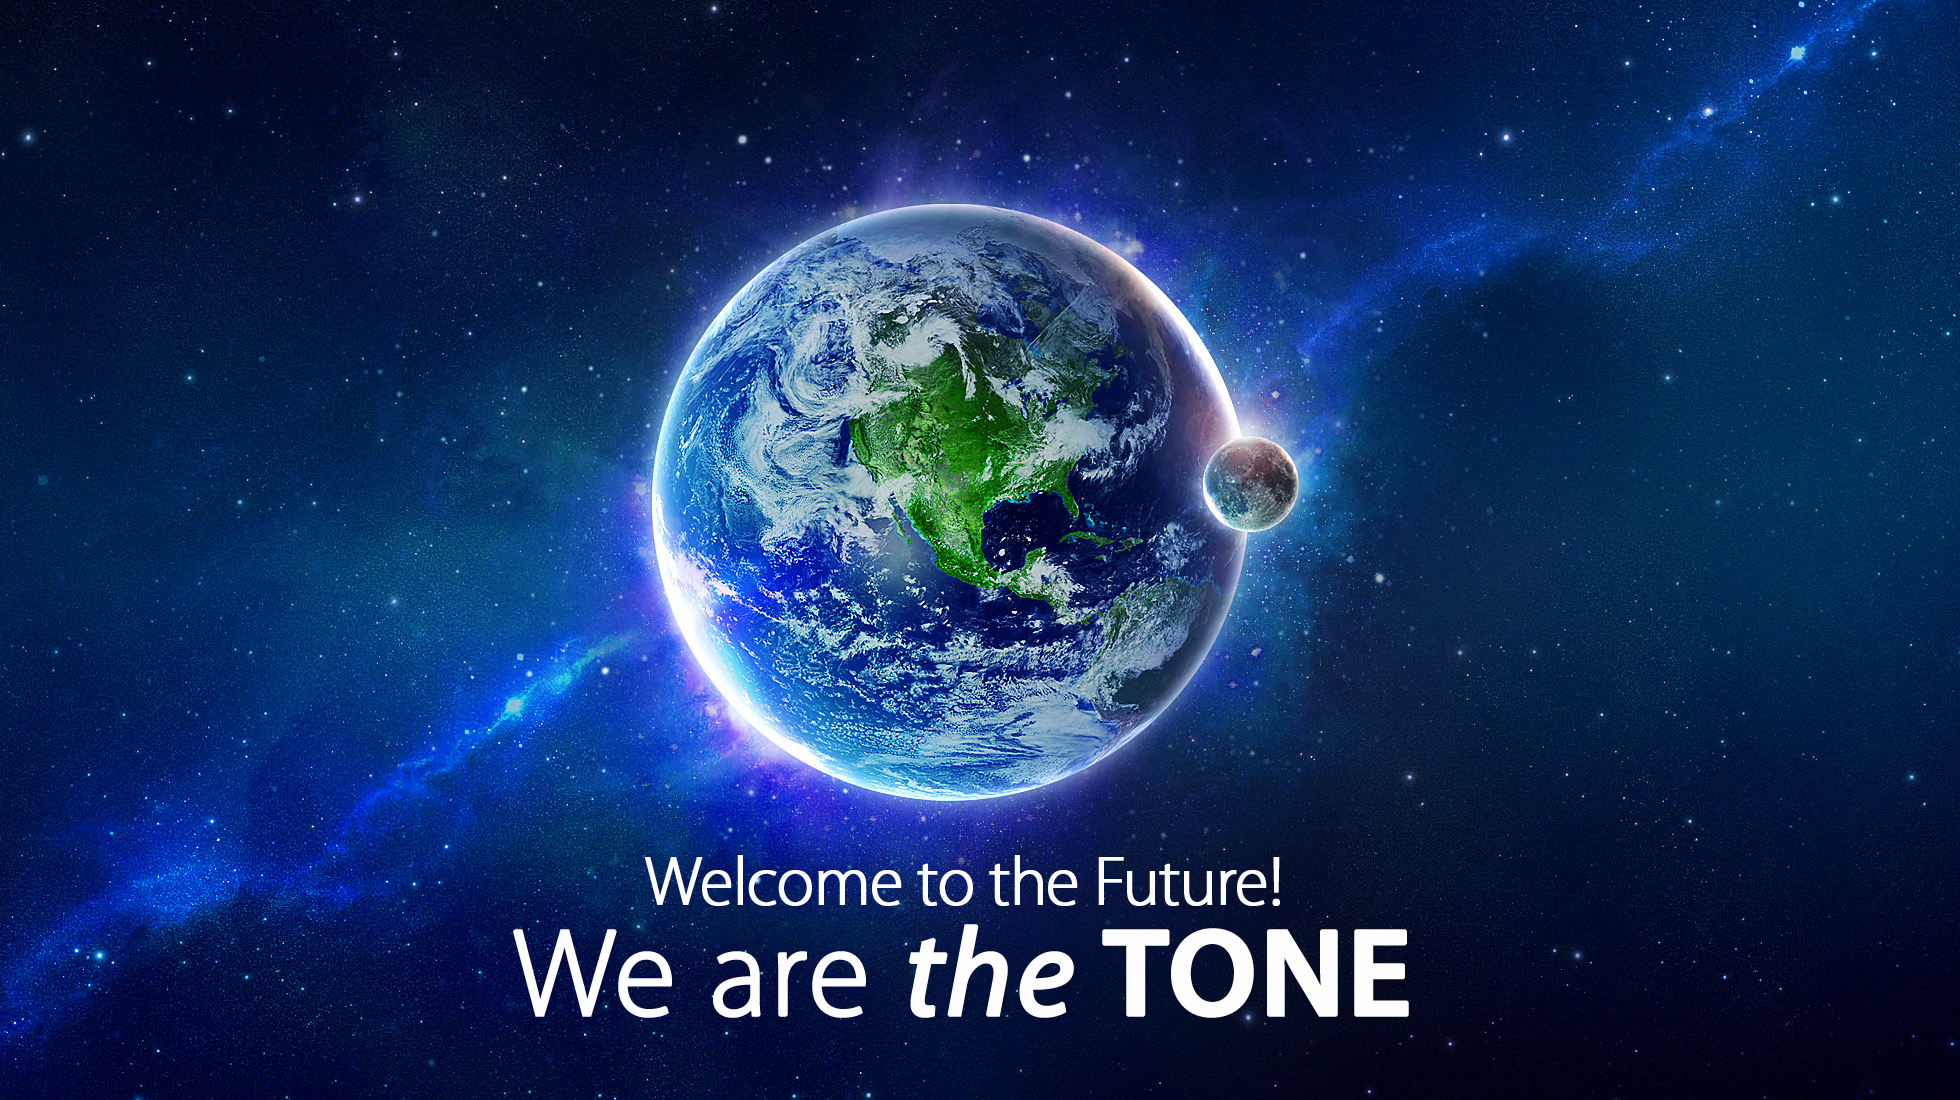 We are the TONE